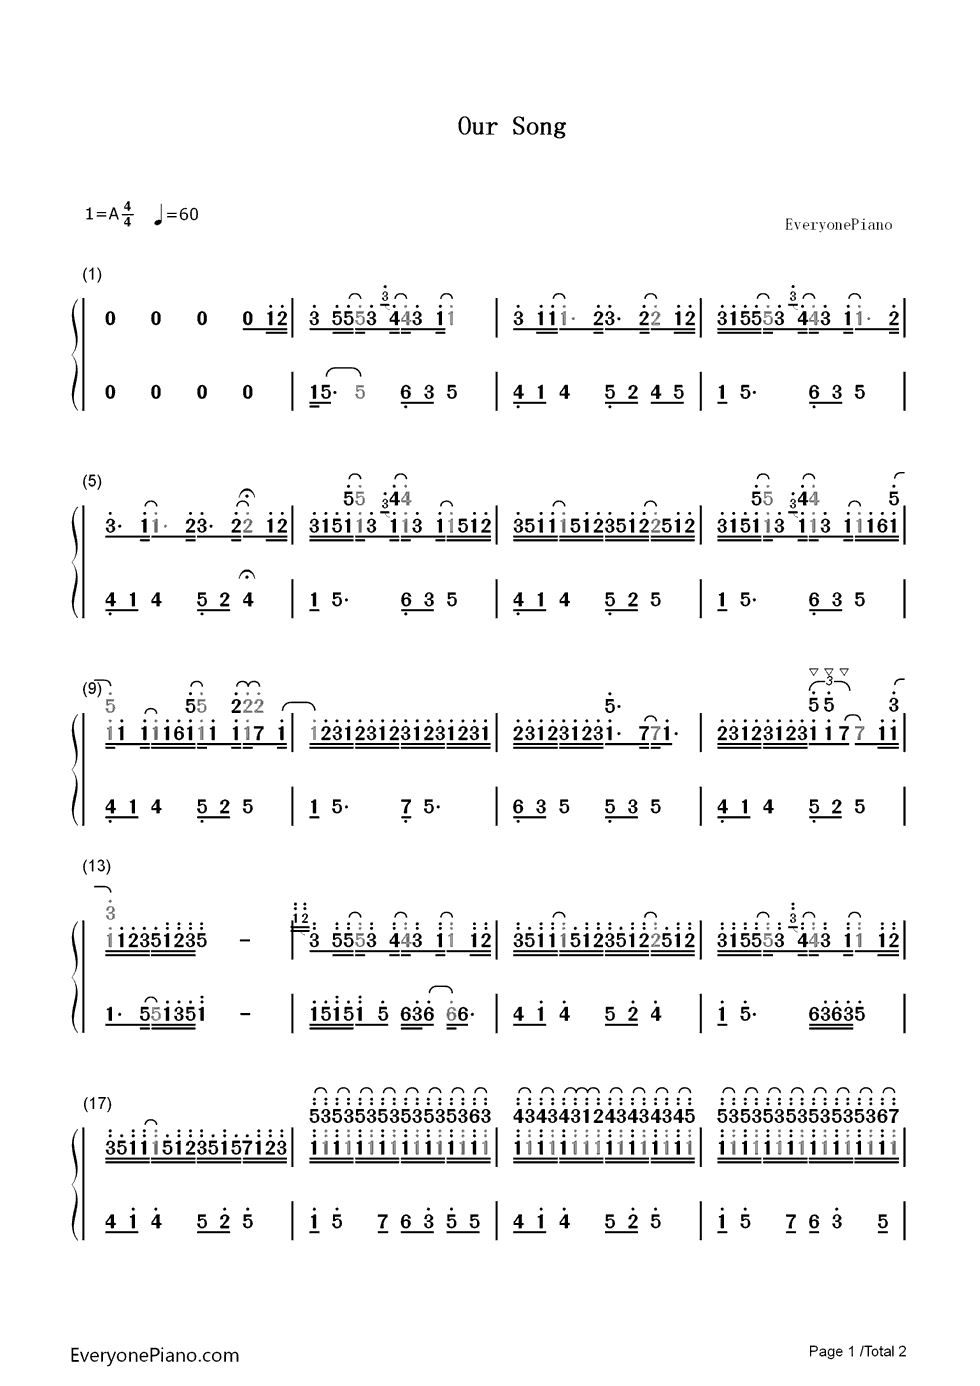 Our song taylor swift numbered musical notation preview 1 free listen now print sheet our song taylor swift numbered musical notation preview 1 hexwebz Choice Image